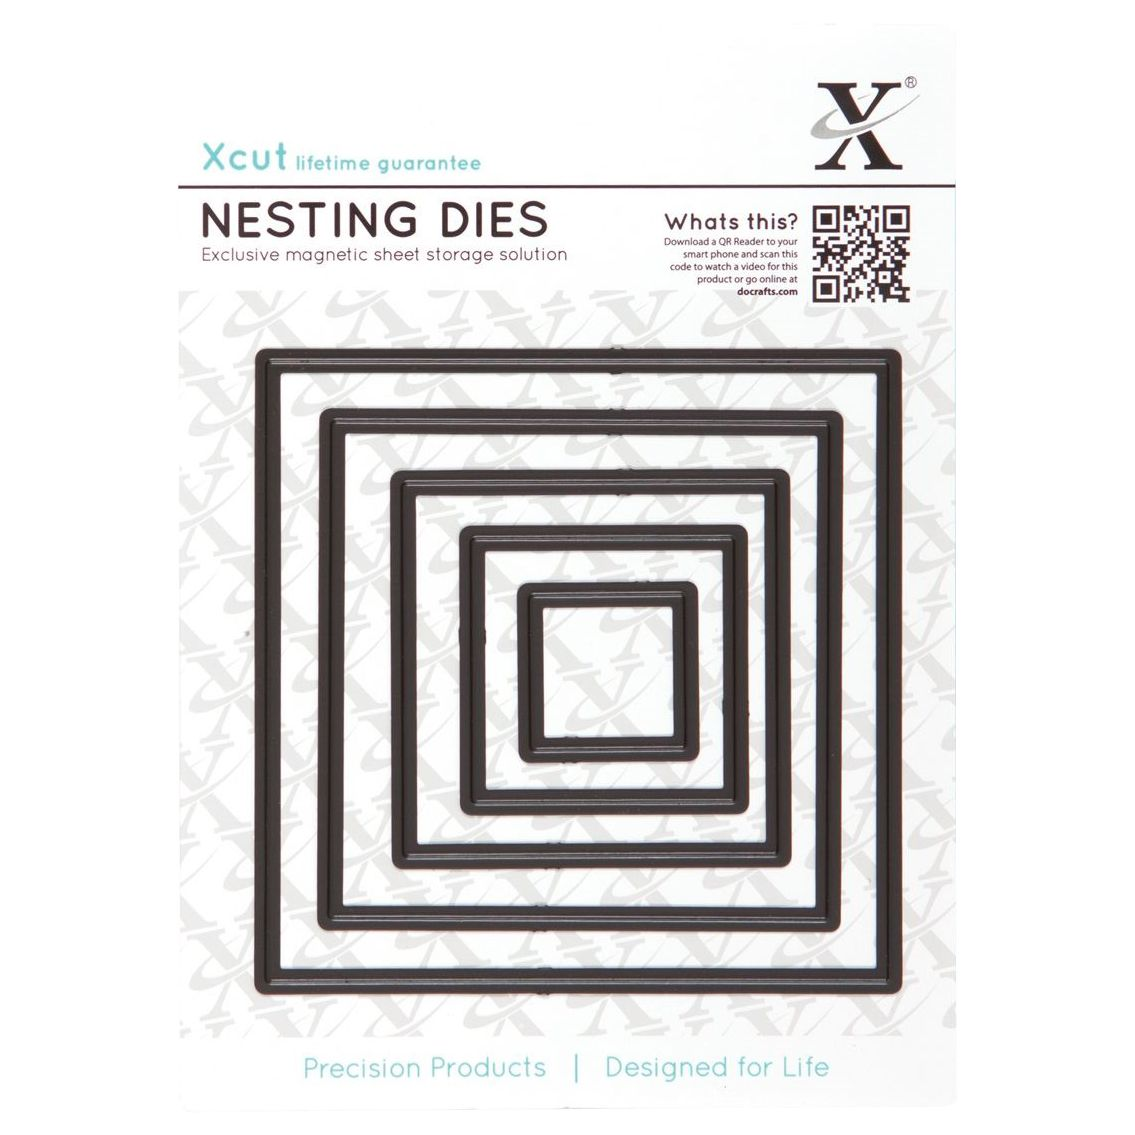 DoCrafts Docrafts Xcut Nesting Square Dies, Pack of 5